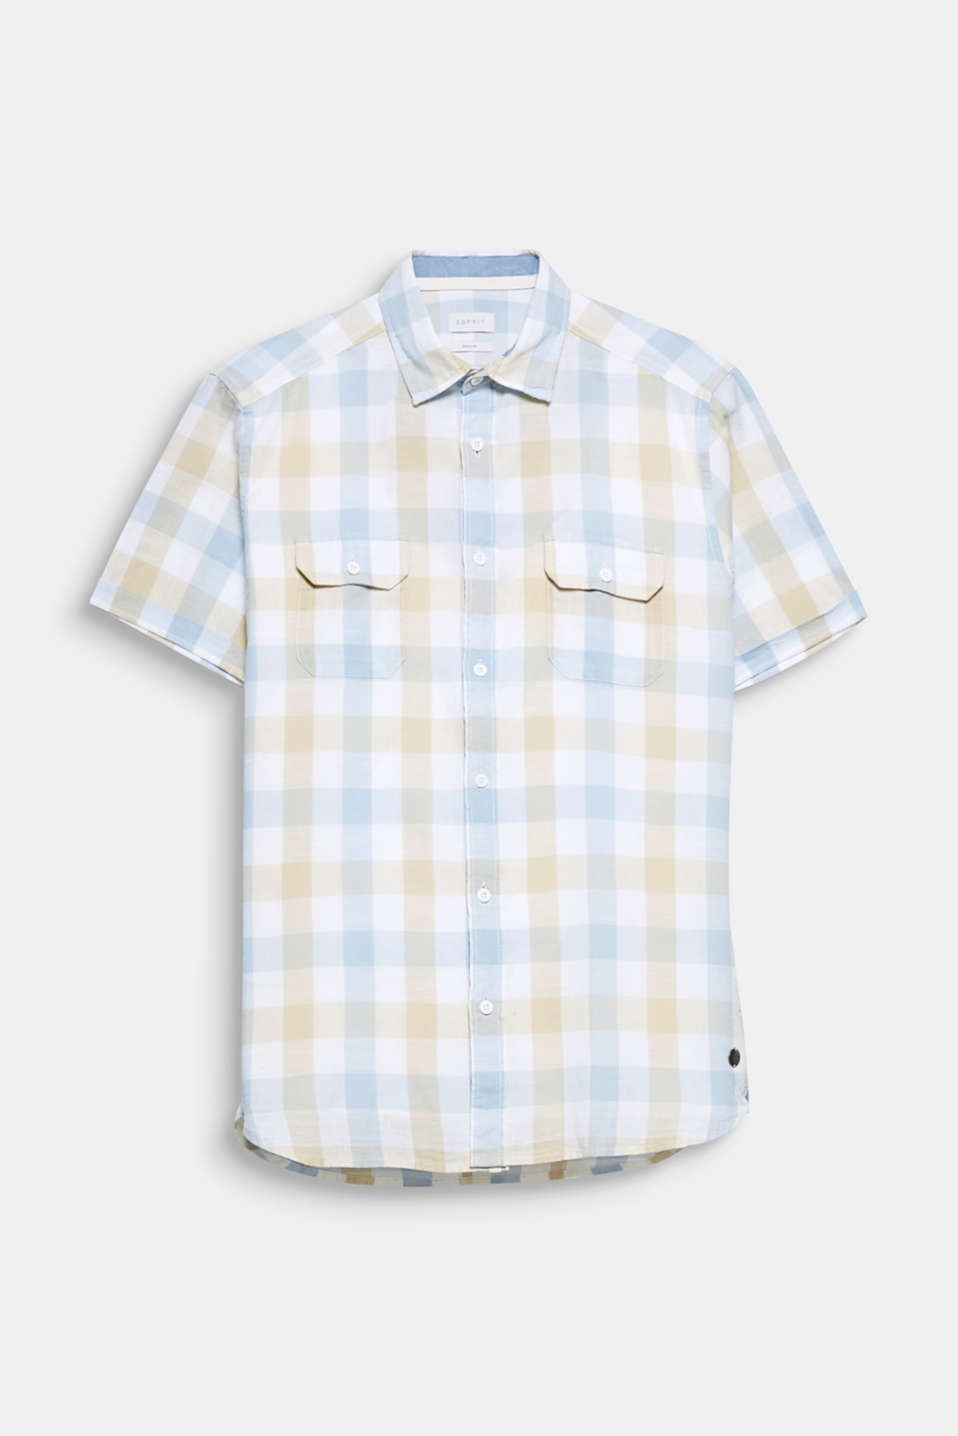 The light and airy fabric made of pure cotton is perfect for summer: short-sleeved shirt with a checked pattern.